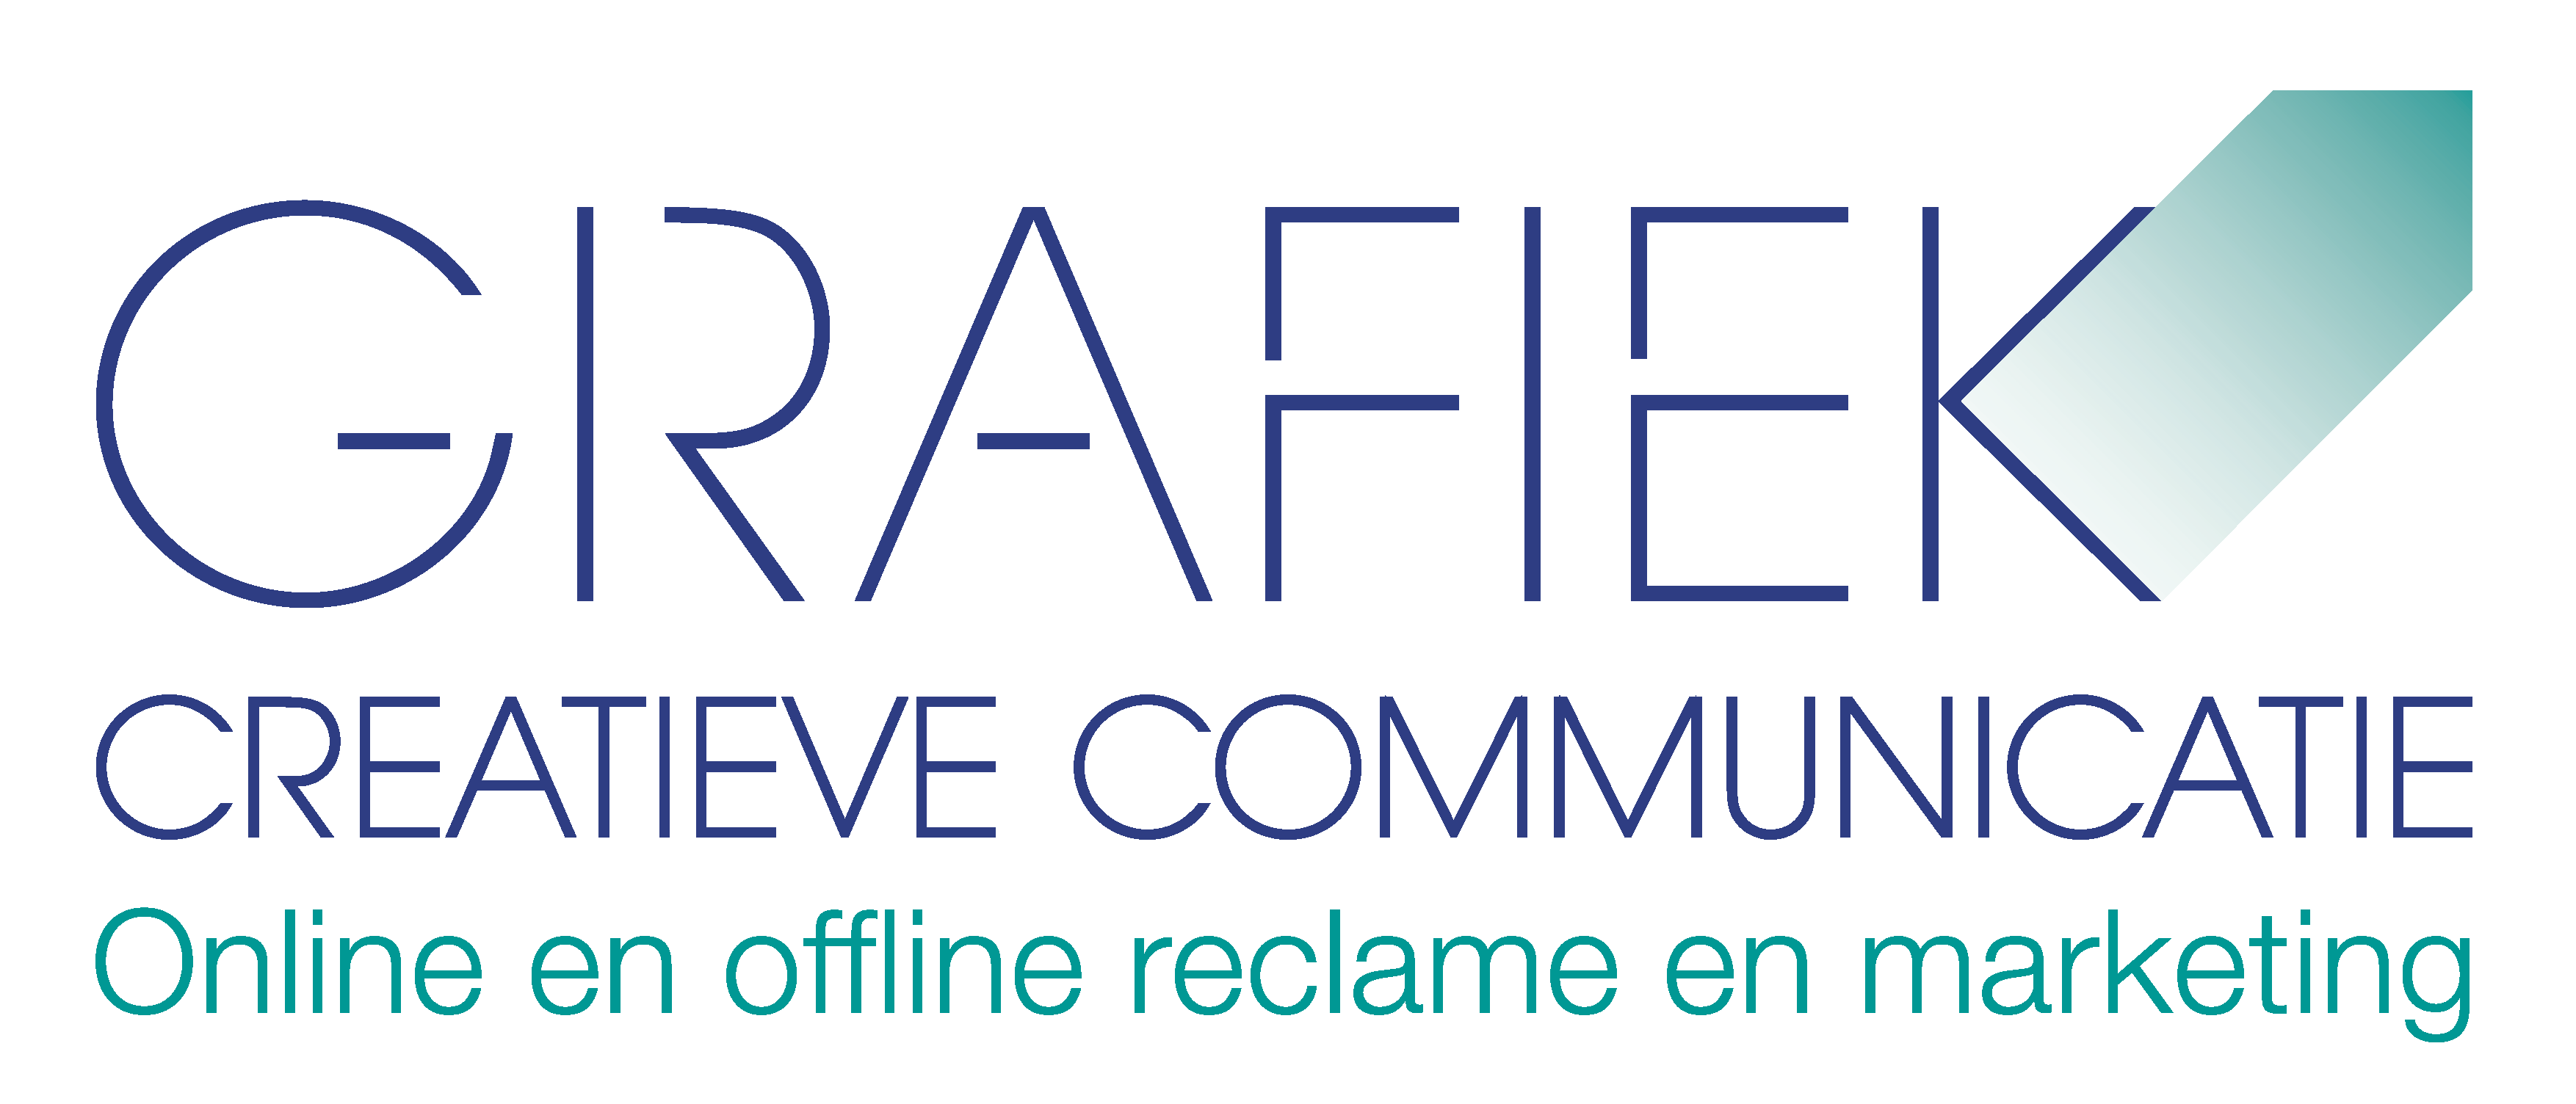 Grafiek Reclamebureau - Online en offline reclame en marketing